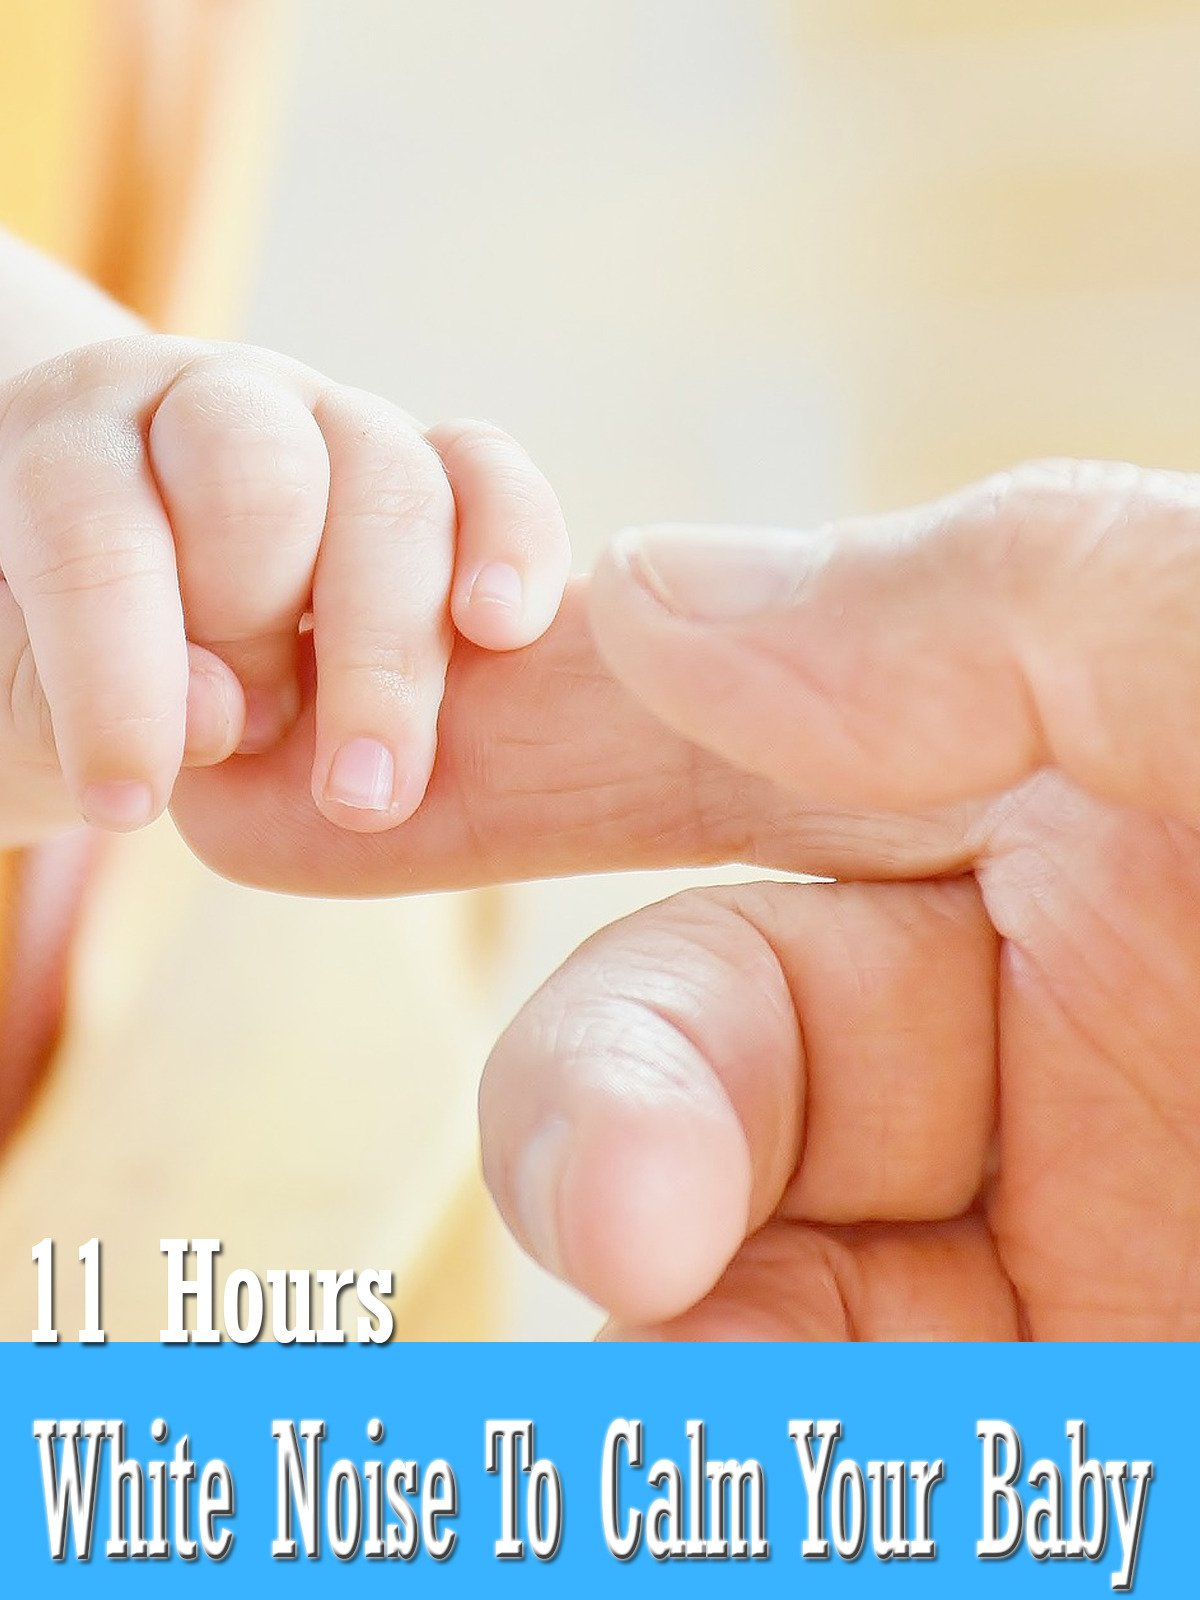 White Noise To Calm Your Baby 11 Hours